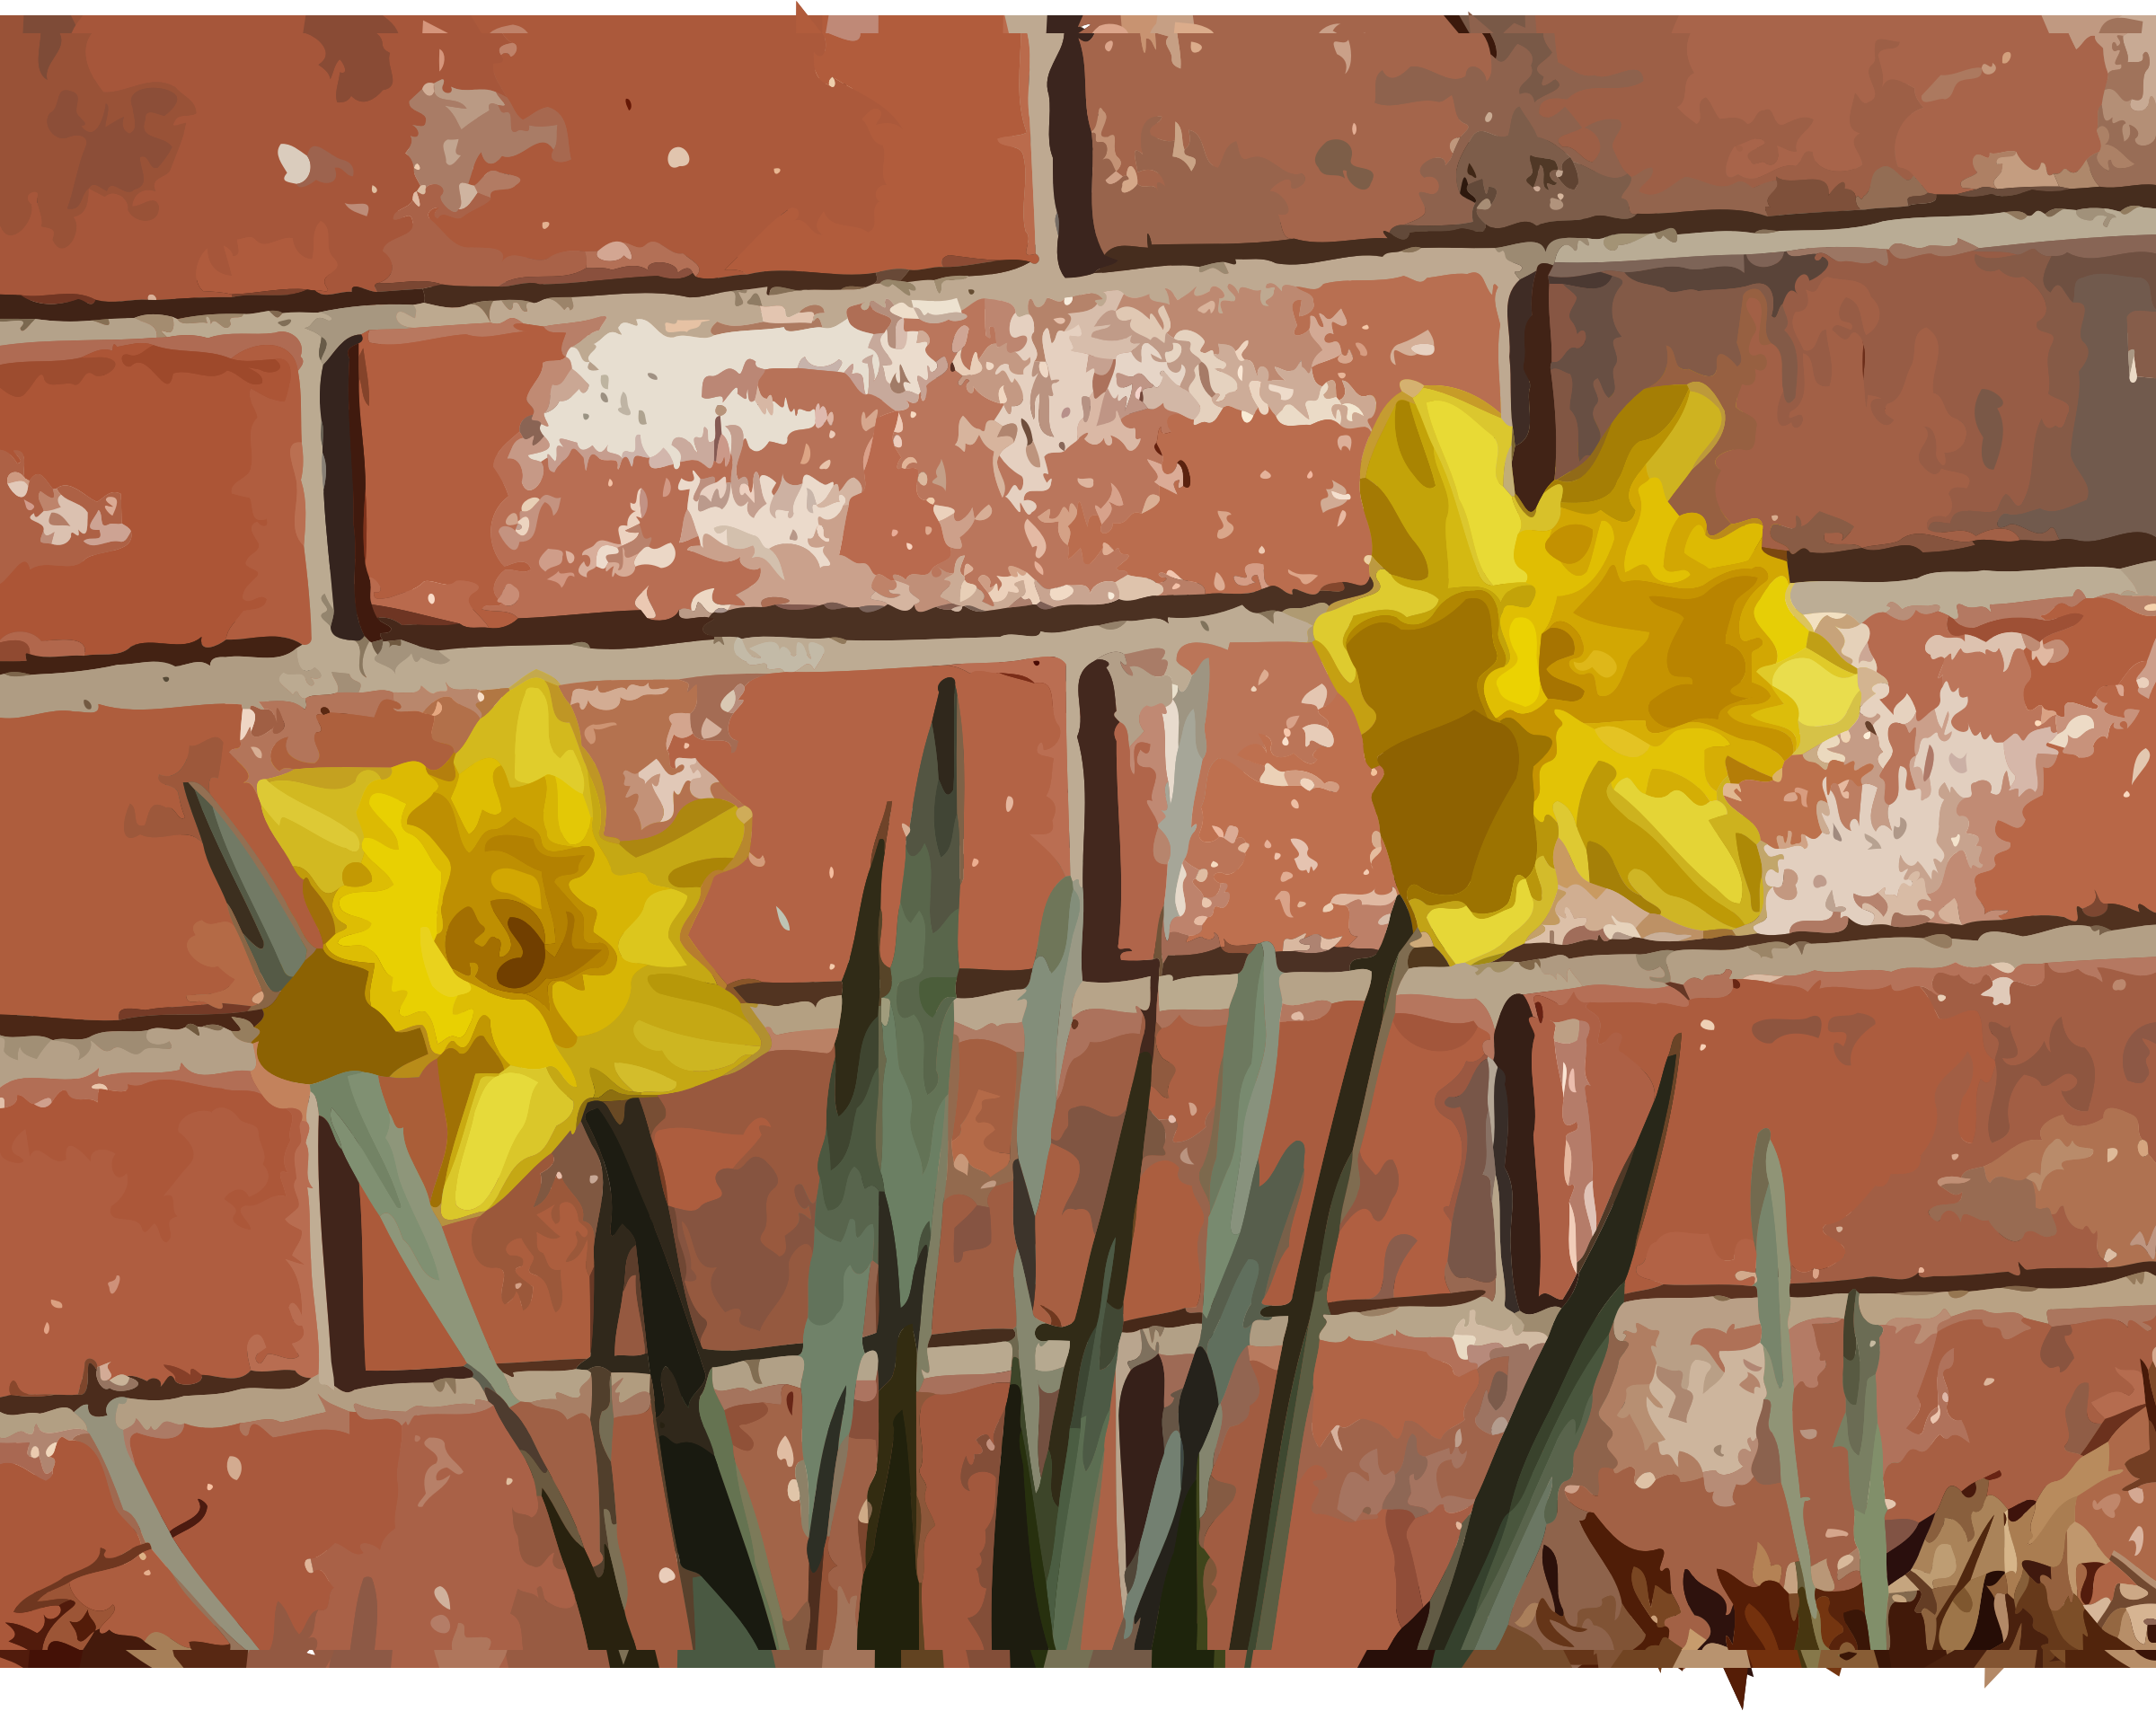 daffodils-03 by datteber